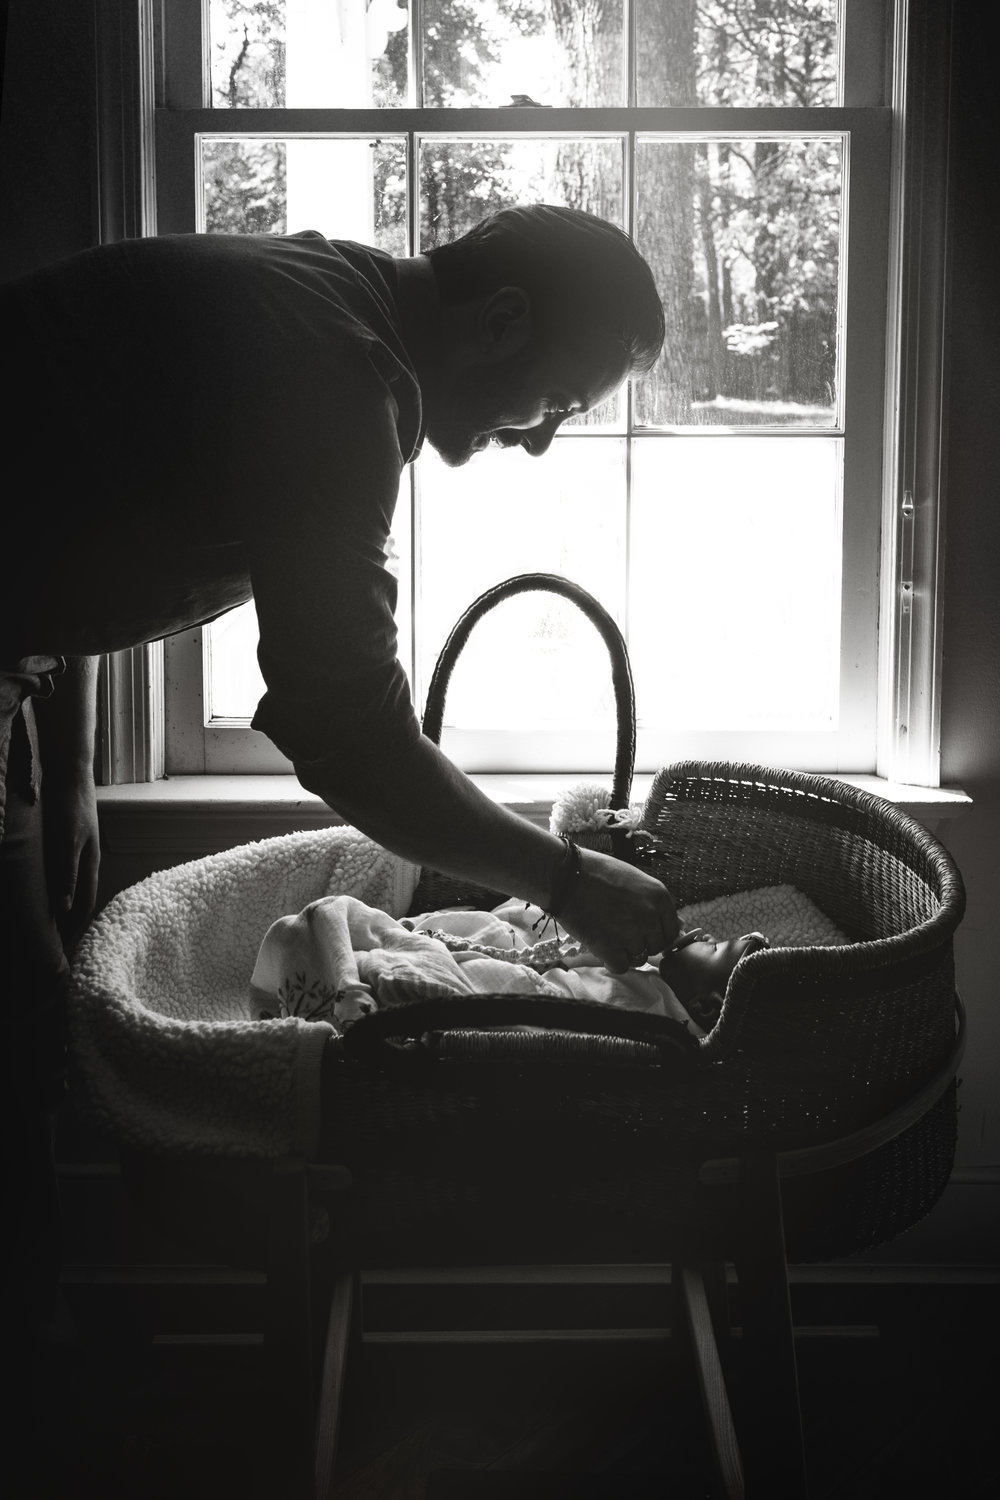 black and white silhouette photograph of father tending to baby daughter in bassinet